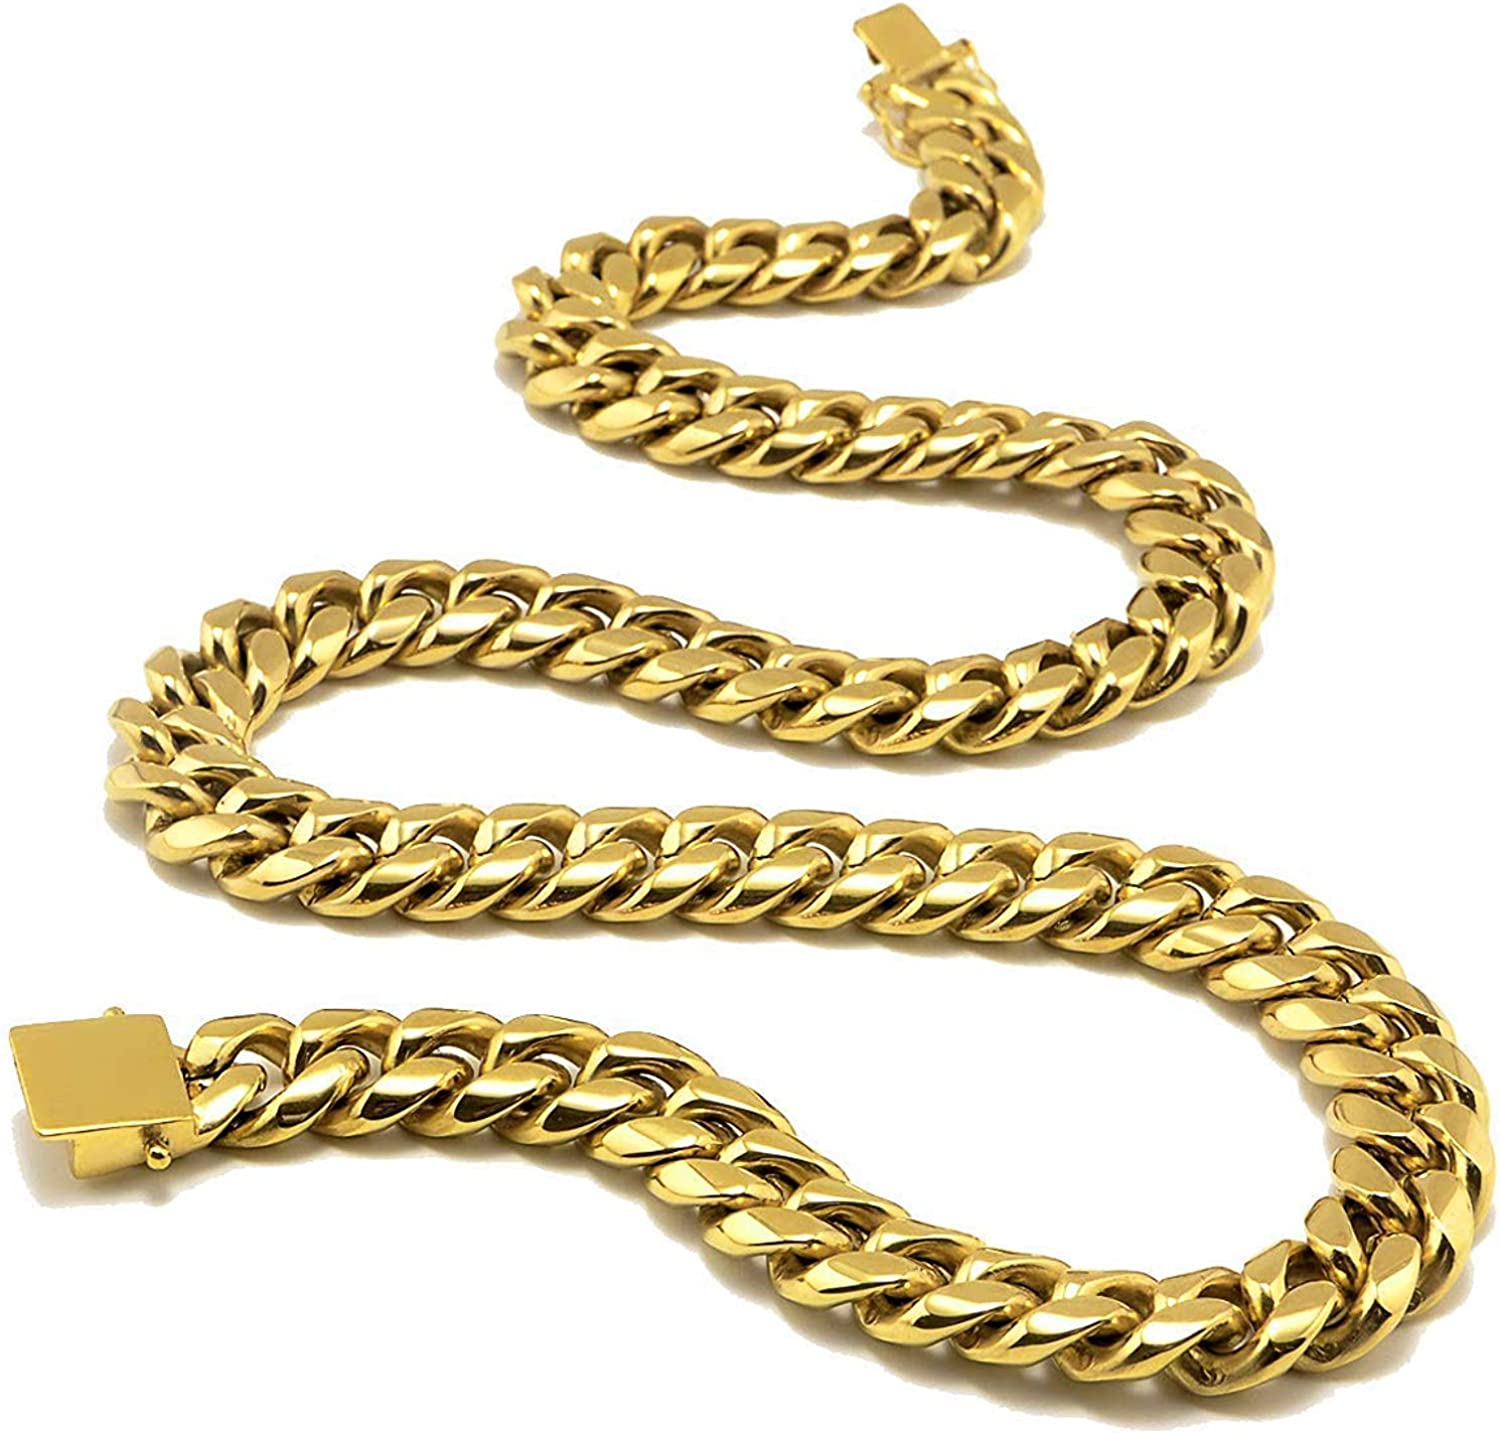 Dubai Collections 14mm Curb Link Gold Cuban Miami Link Chain Necklace For Men Real 24k Karat Diamond Cut Heavy Titanium Plated Solid Thick Clasp Us Made 22 24 26 22 0 Amazon Com